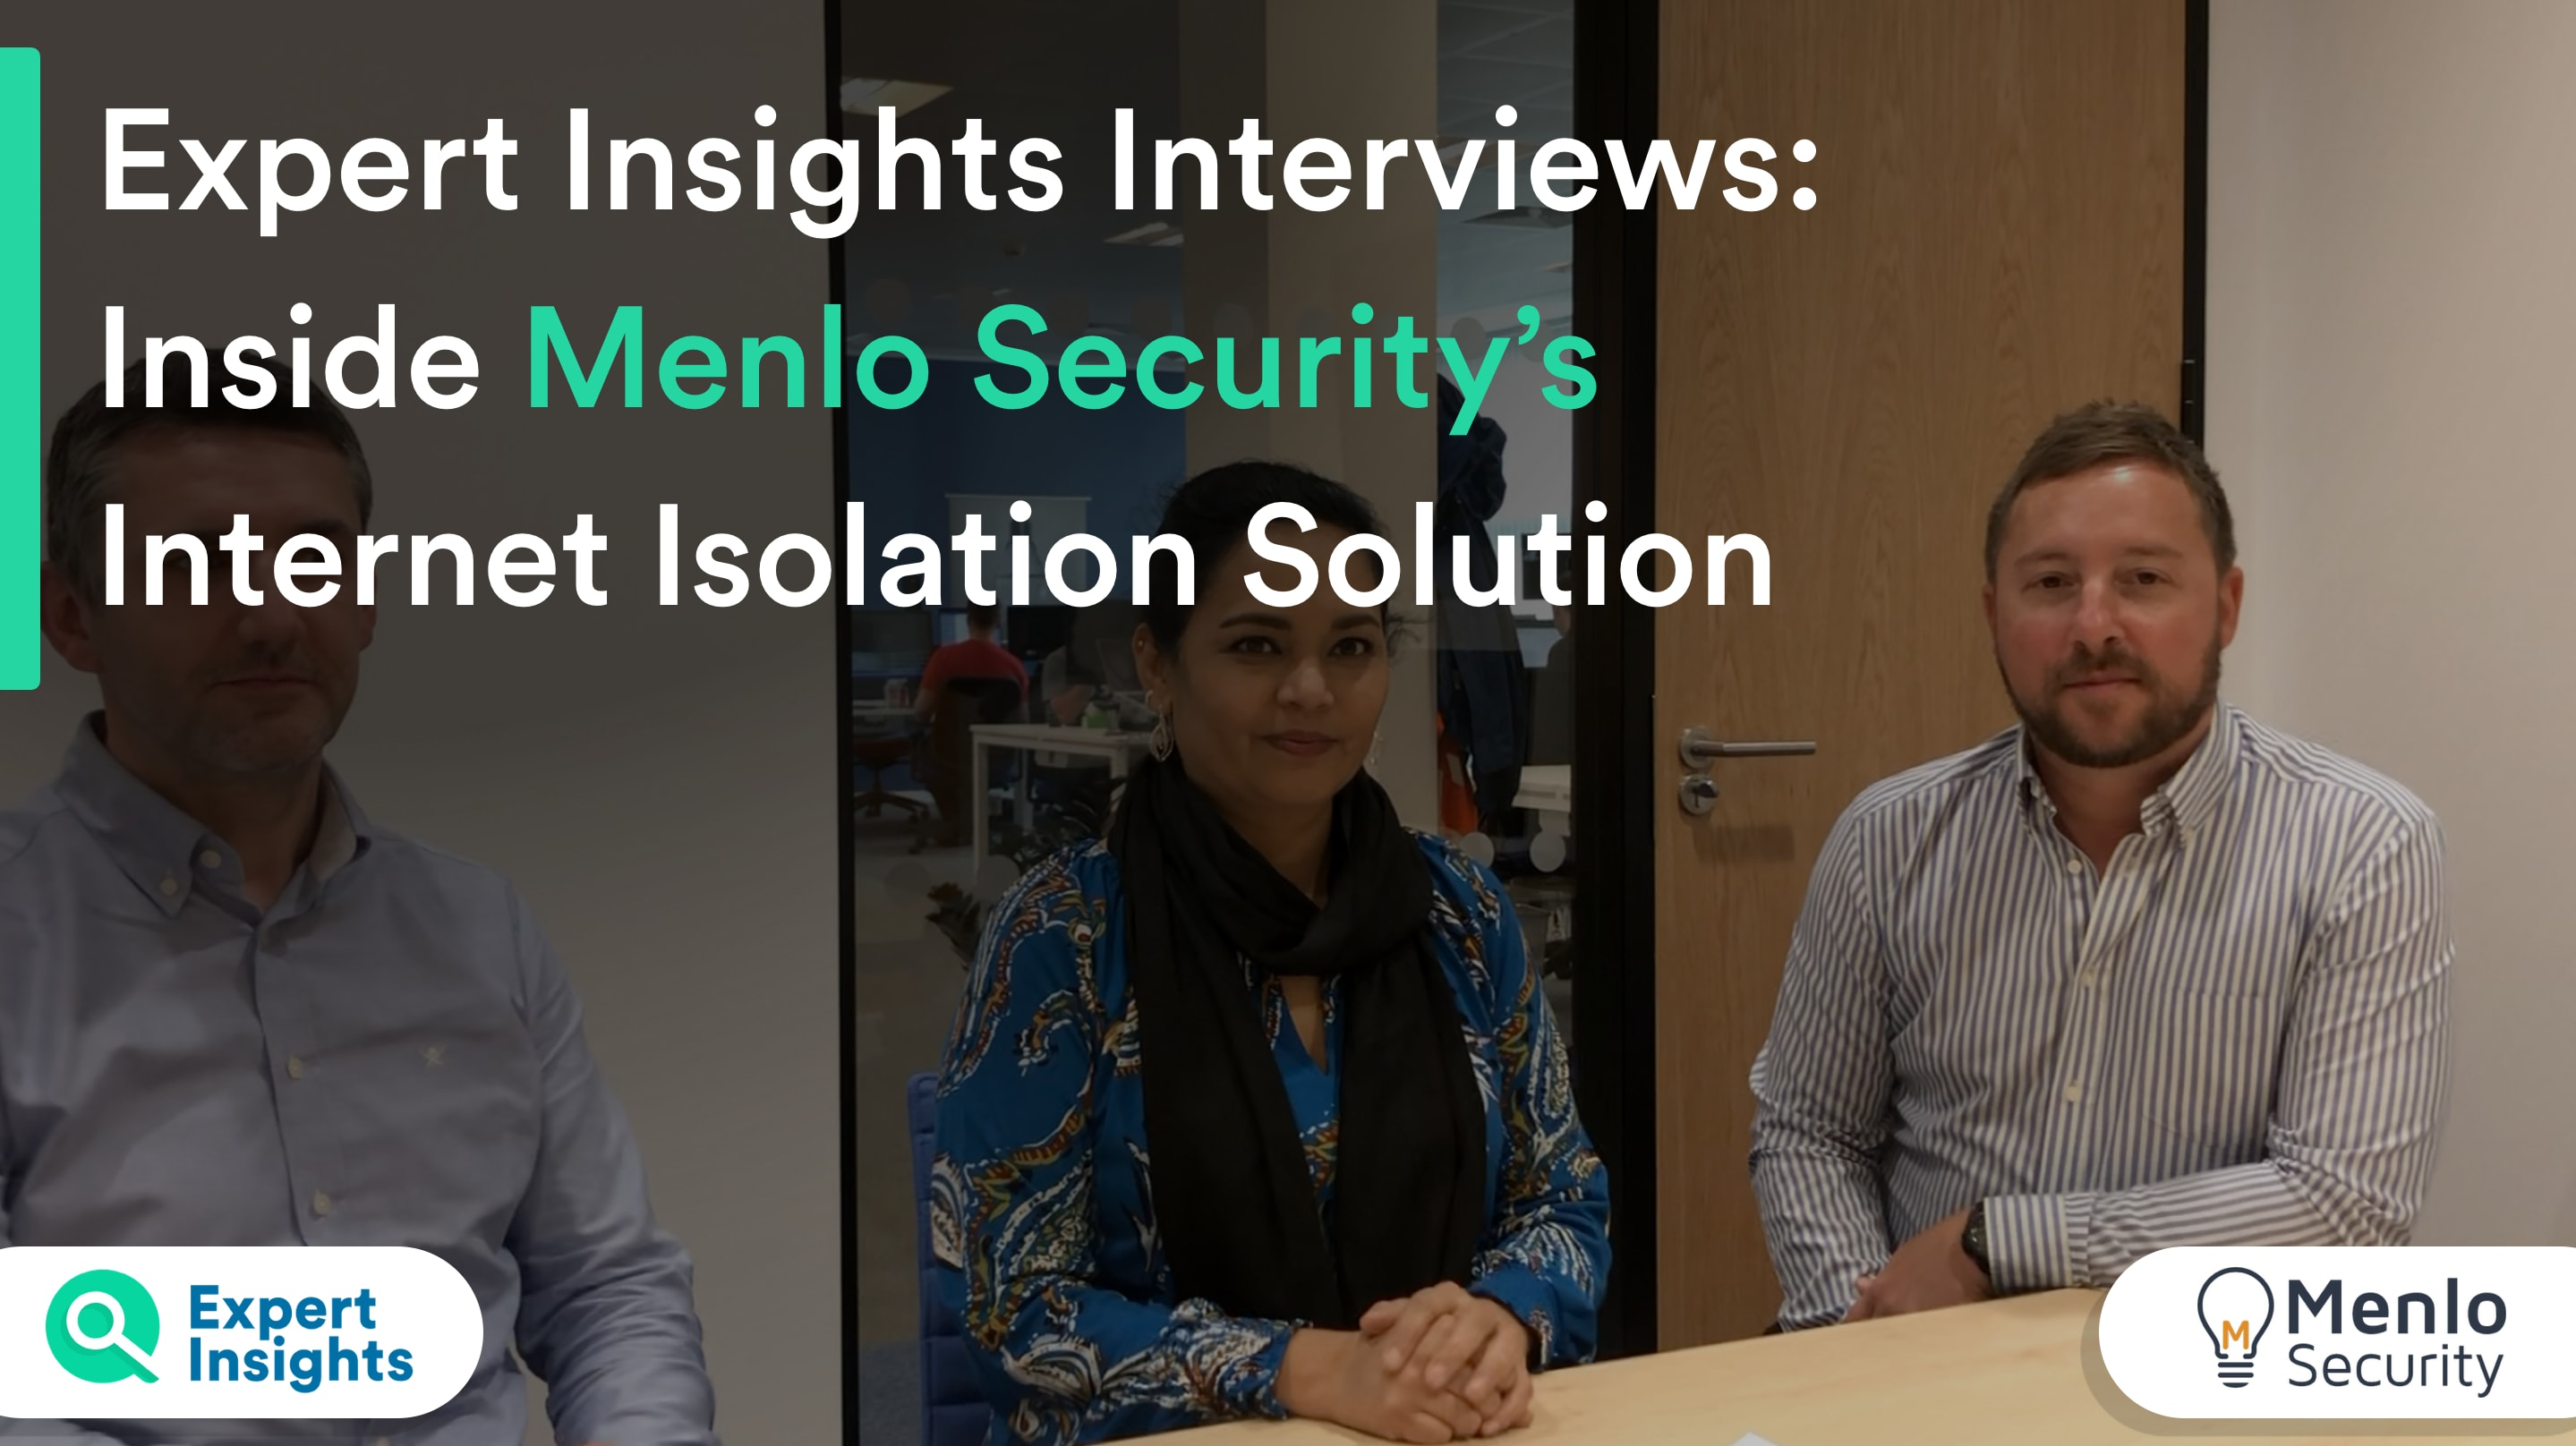 inside menlo security's isolation solution